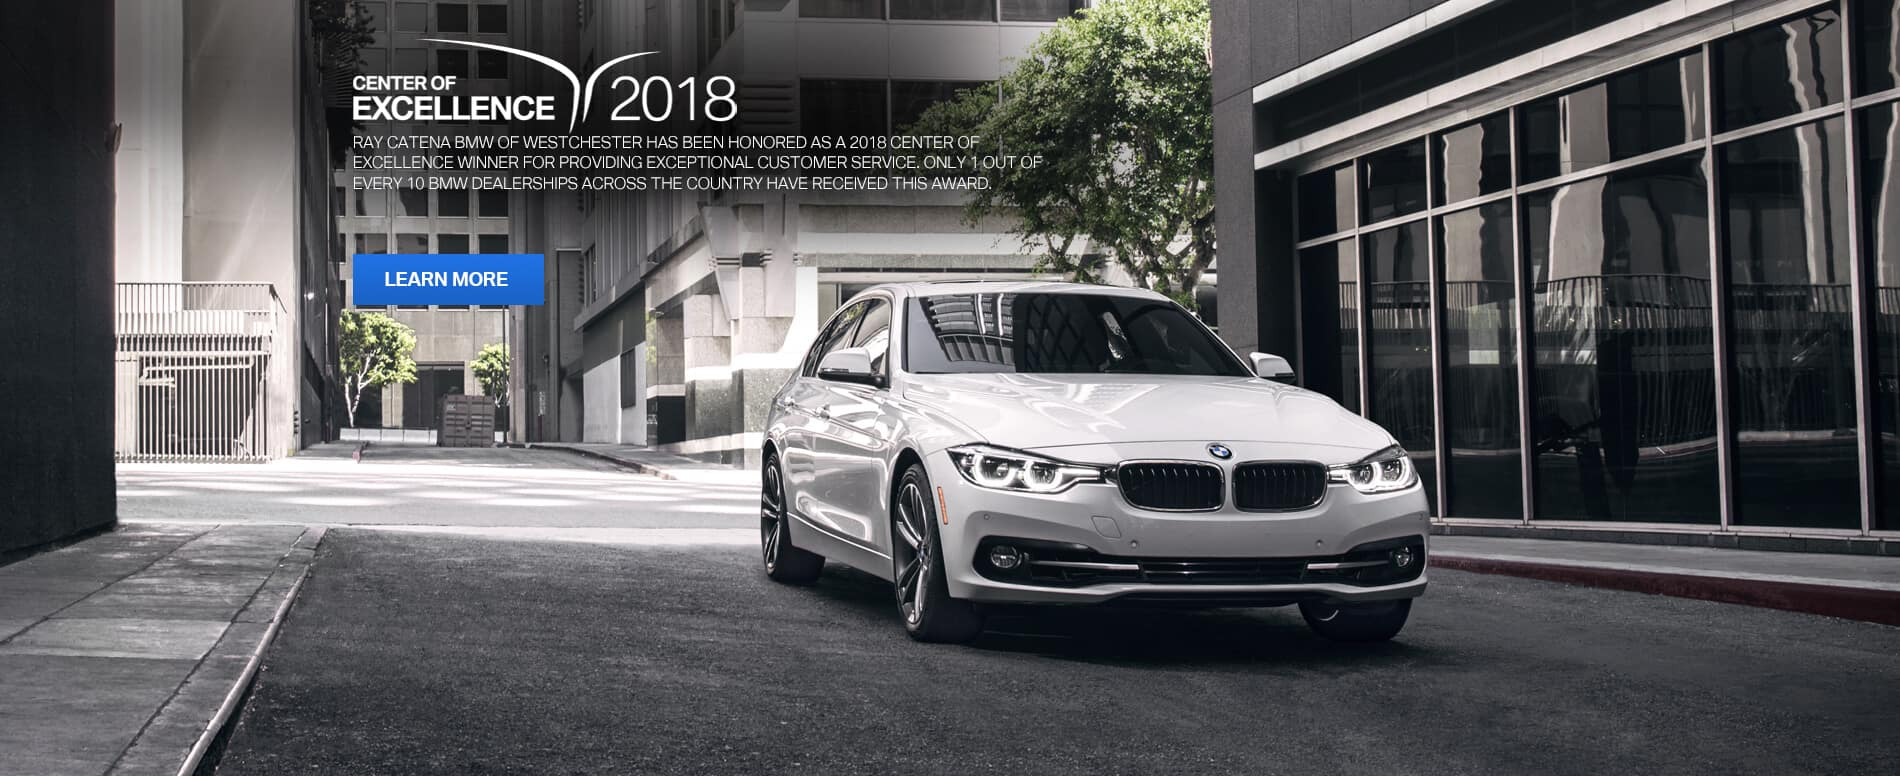 Bmw dealer white plains ny bmw of westchester fandeluxe Images